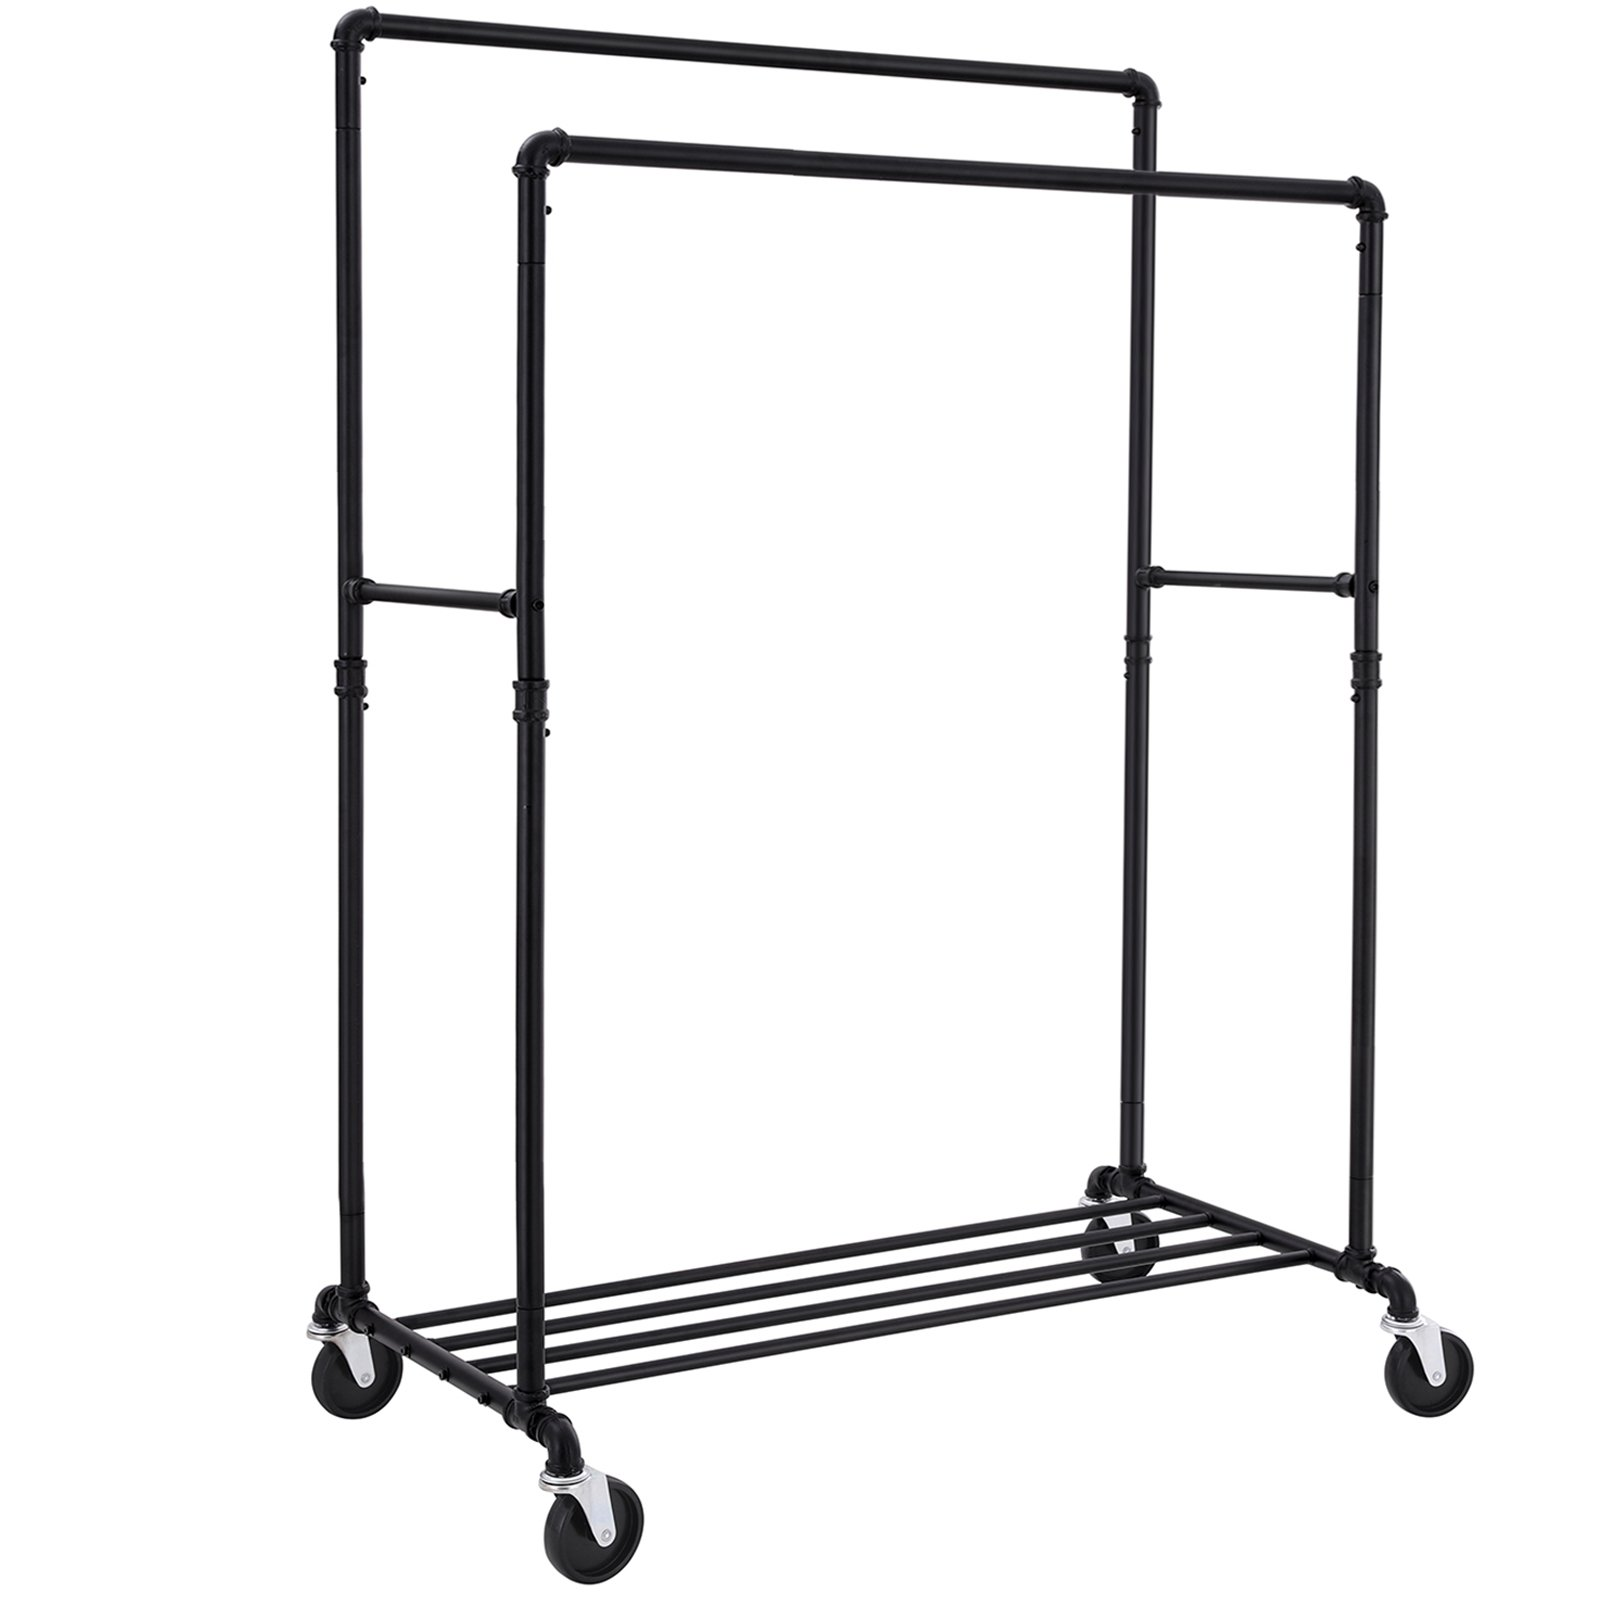 SONGMICS Industrial Pipe Clothes Rack Double Rail on Wheels with Commercial Grade Clothing Hanging Rack Organizer for Garment Storage Display, Black UHSR60B by SONGMICS